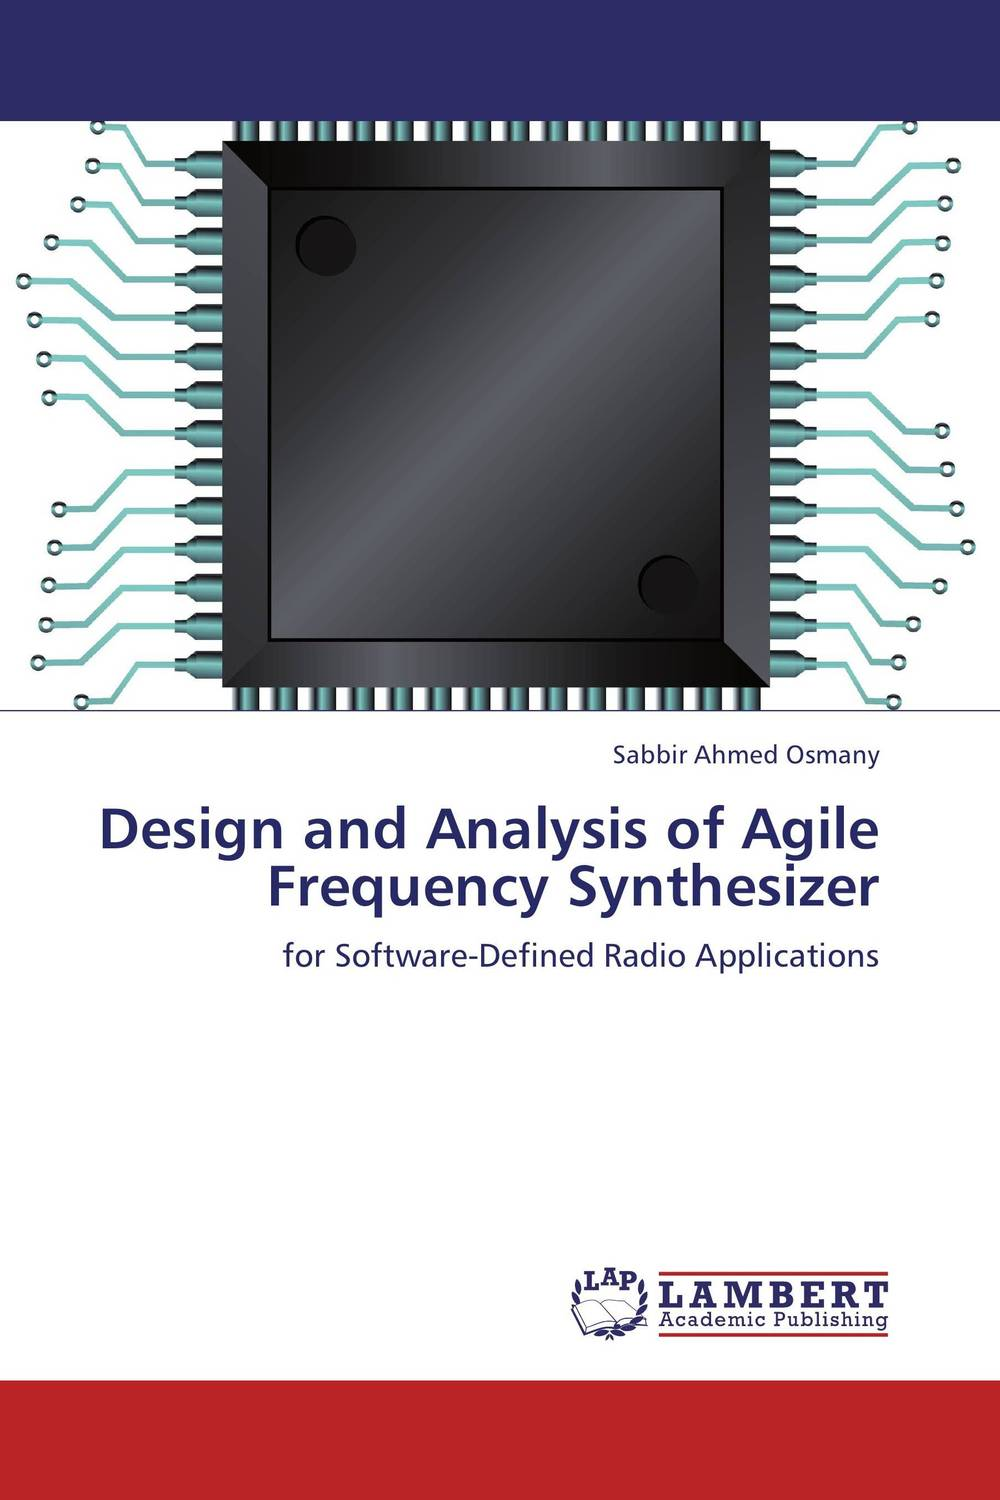 Design and Analysis of Agile Frequency Synthesizer vfd110cp43b 21 delta vfd cp2000 vfd inverter frequency converter 11kw 15hp 3ph ac380 480v 600hz fan and water pump